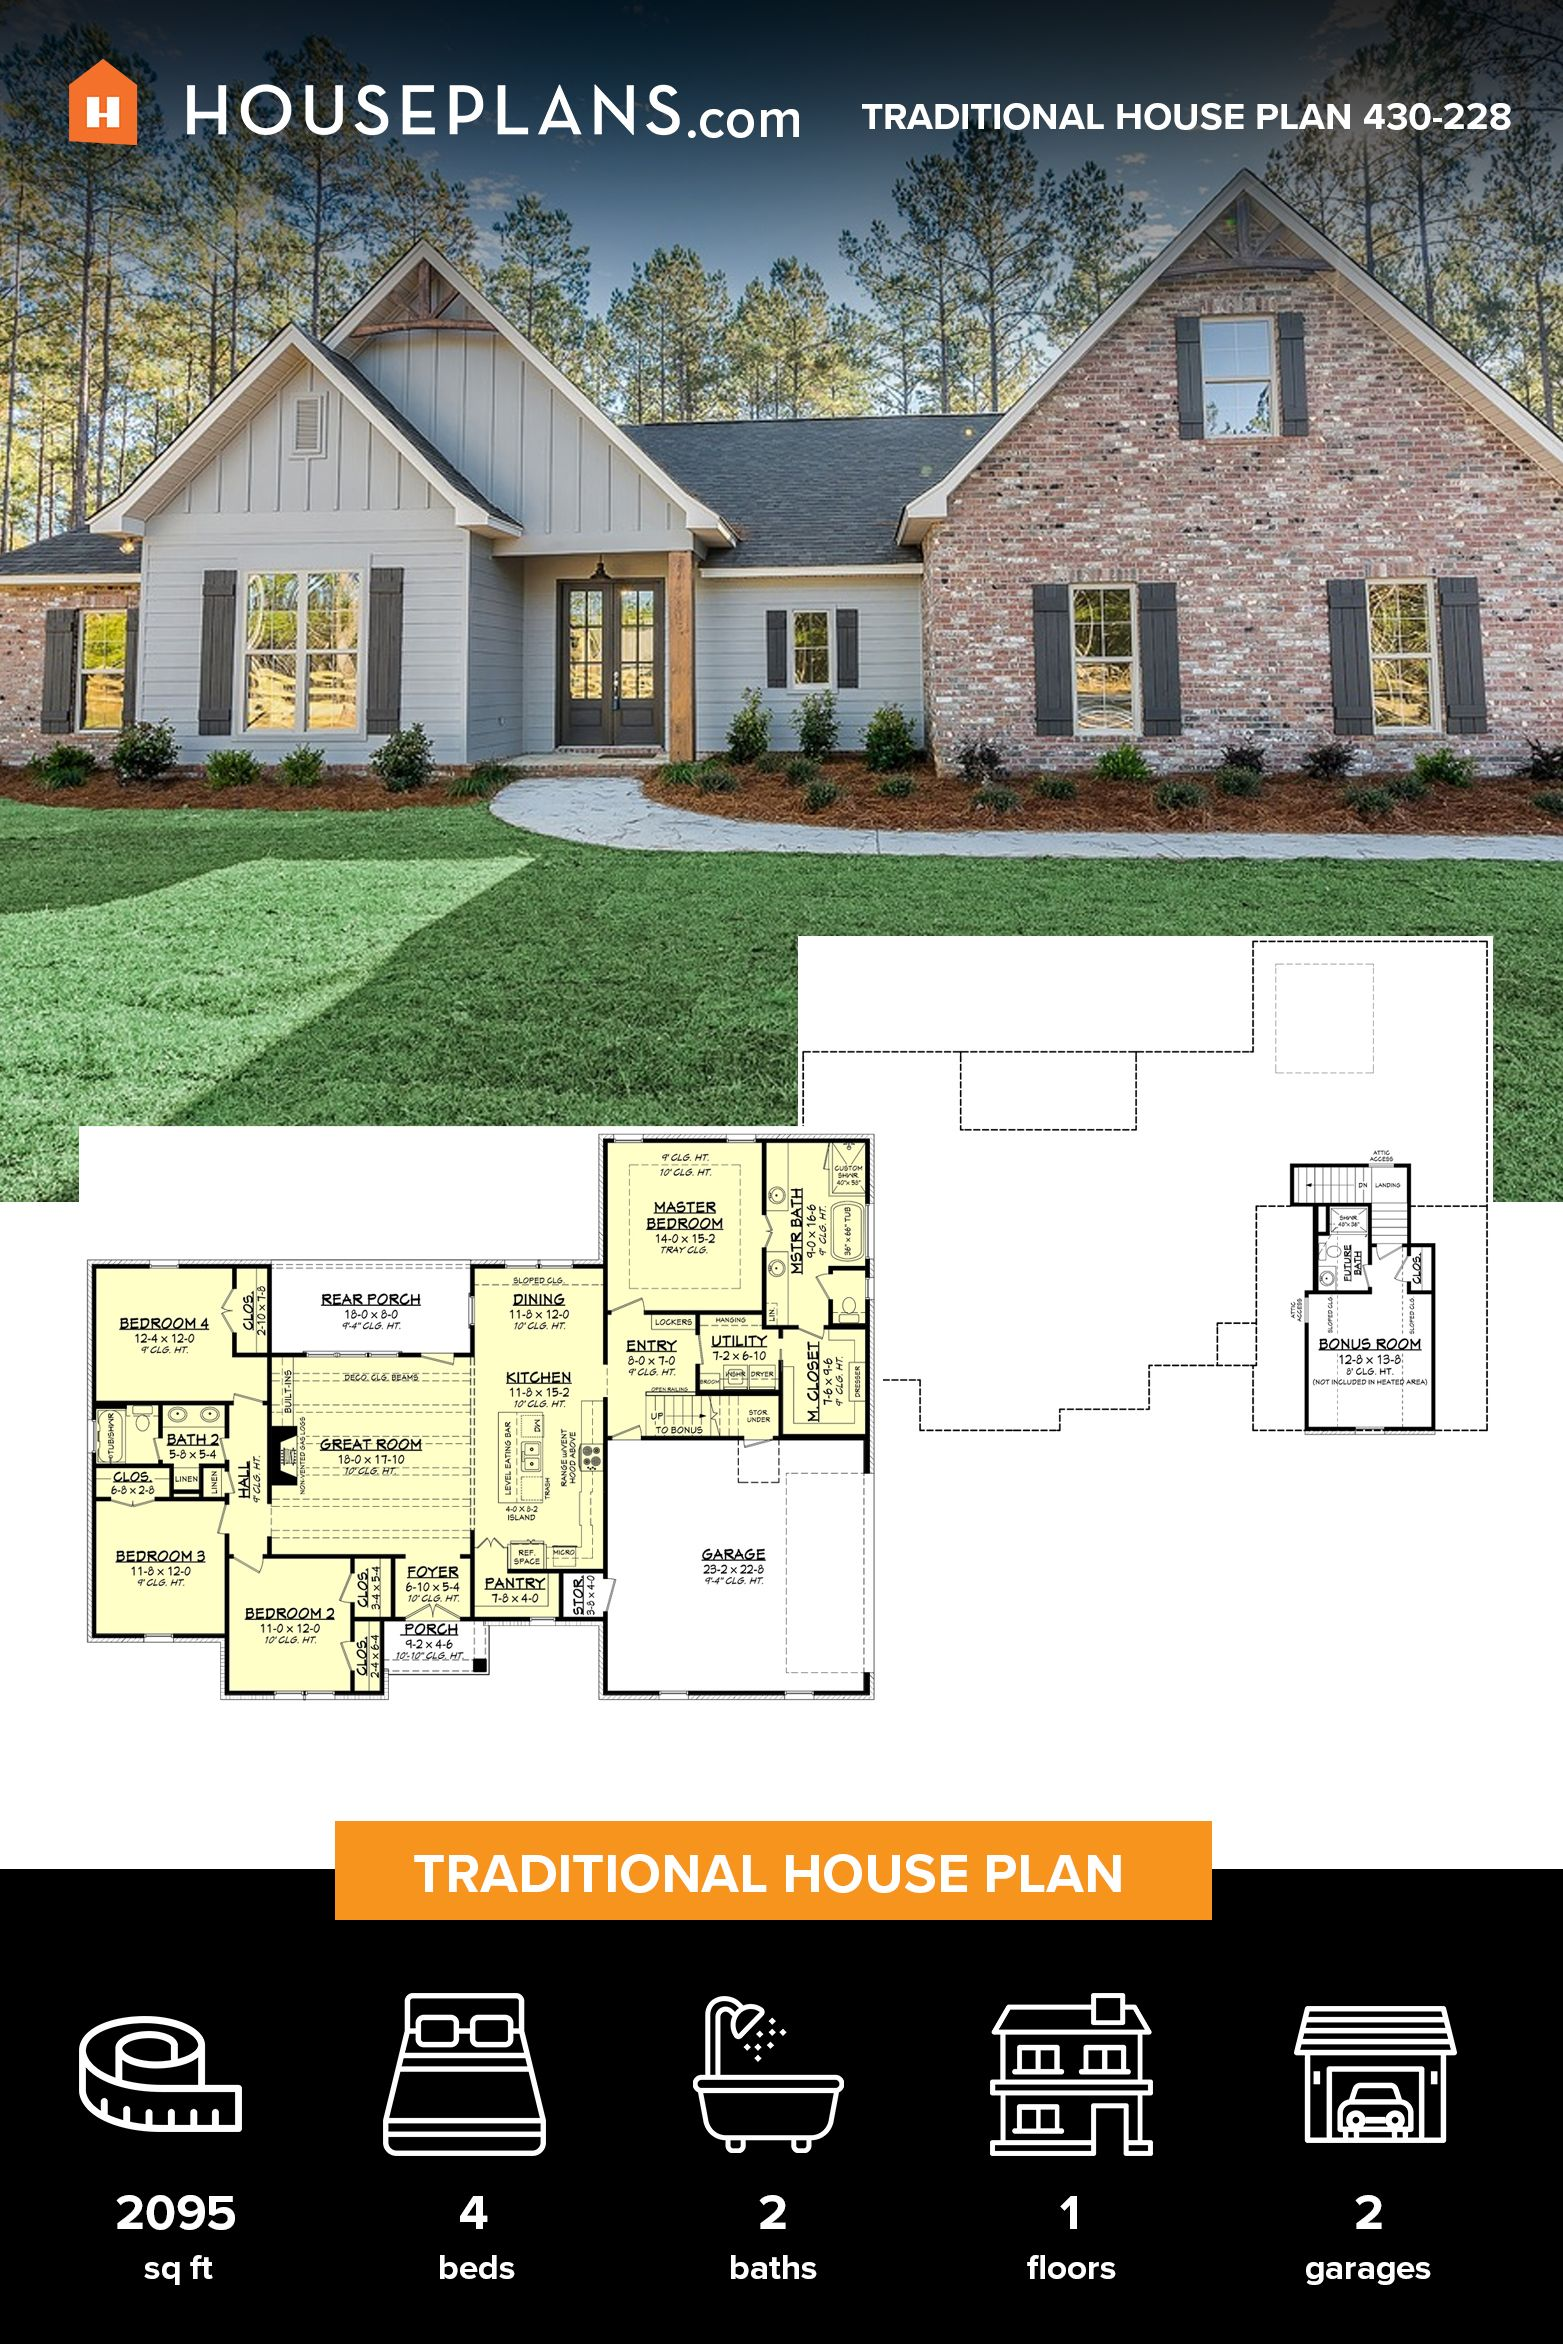 Traditional Style House Plan 4 Beds 2 Baths 2095 Sq Ft Plan 430 228 In 2020 White House Plans House Blueprints House Plans Farmhouse